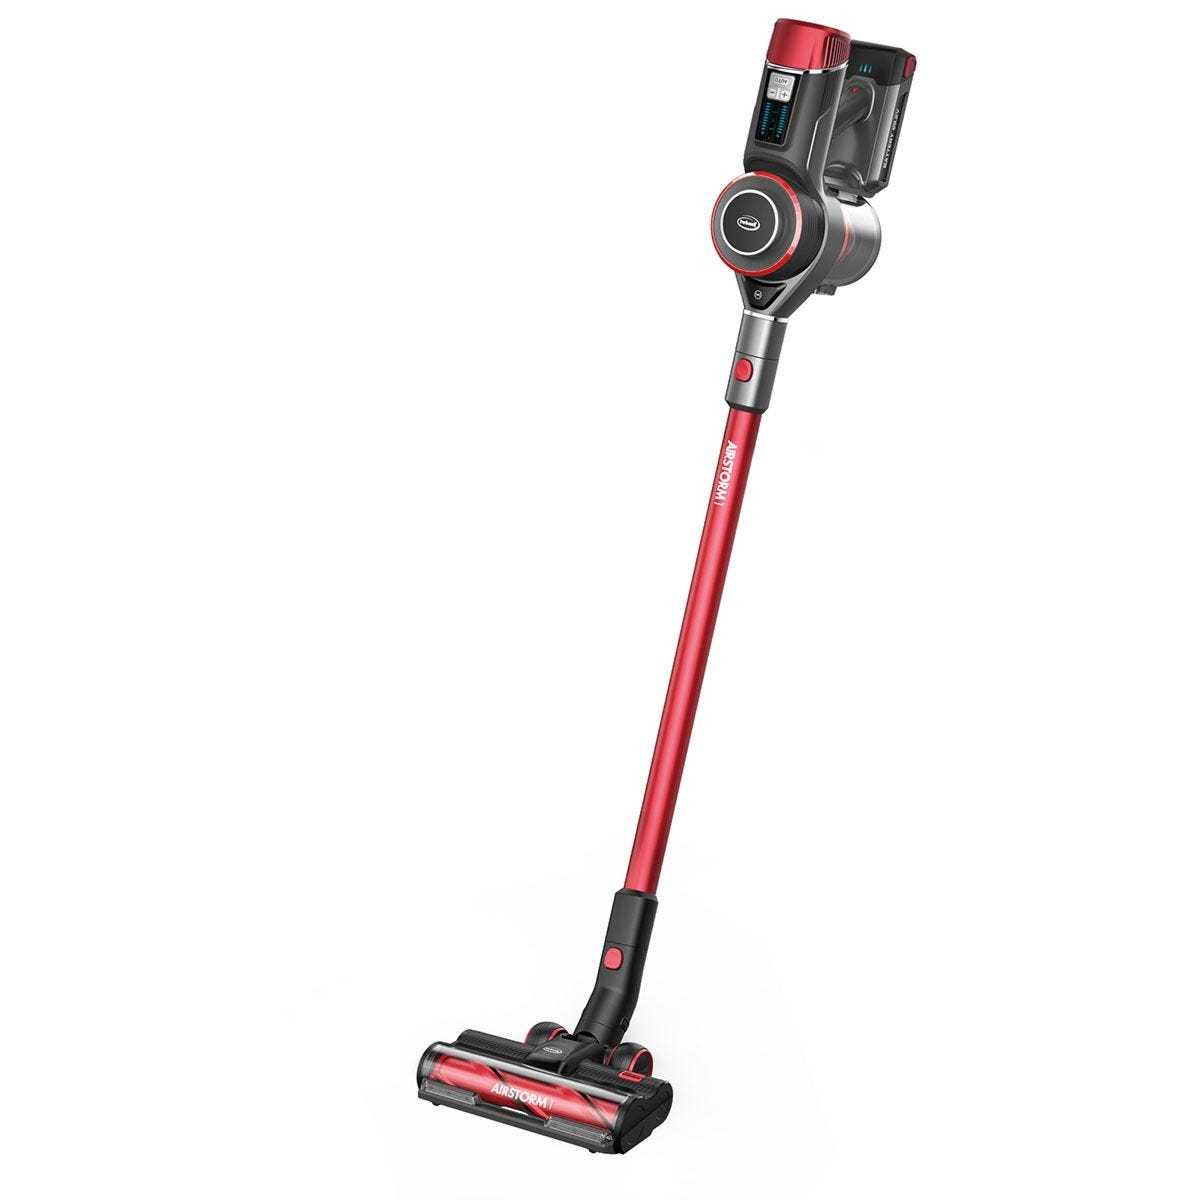 Ewbank EW3040 Airstorm1 Cordless 0.6L Pet Vacuum Cleaner – Black and Red